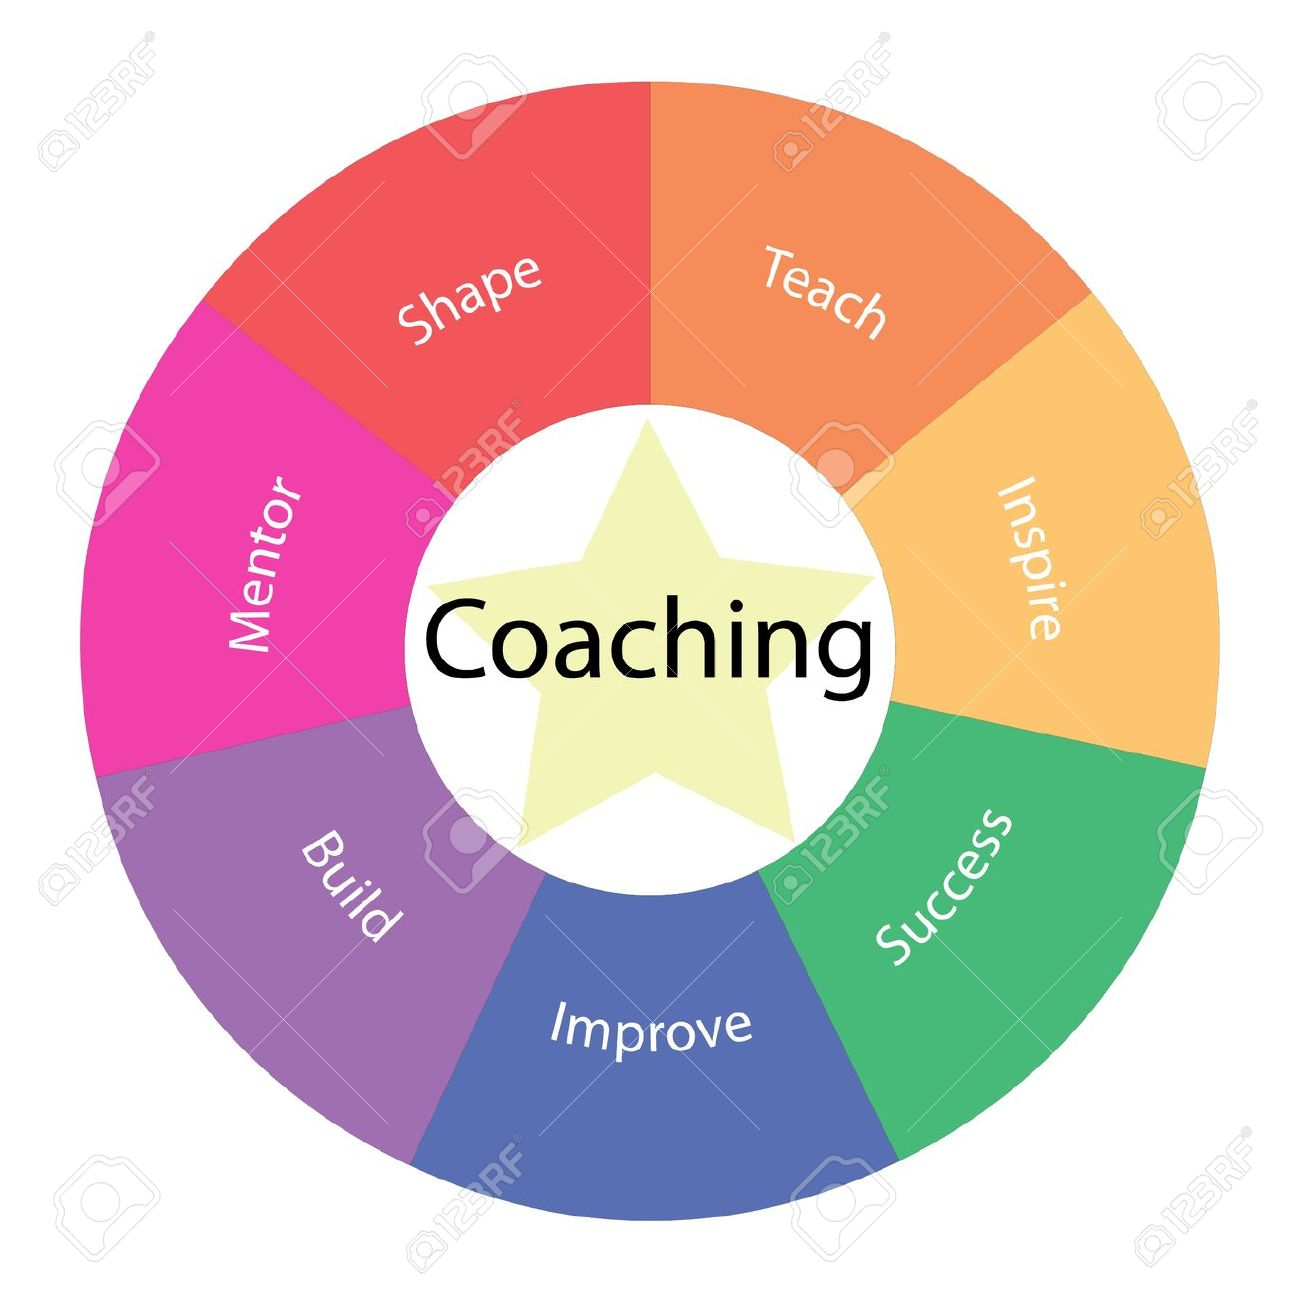 Coaching circular concept with great terms around the center including mentor, shape, teach, inspire and success with a yellow star in the middle Stock Photo - 15571983